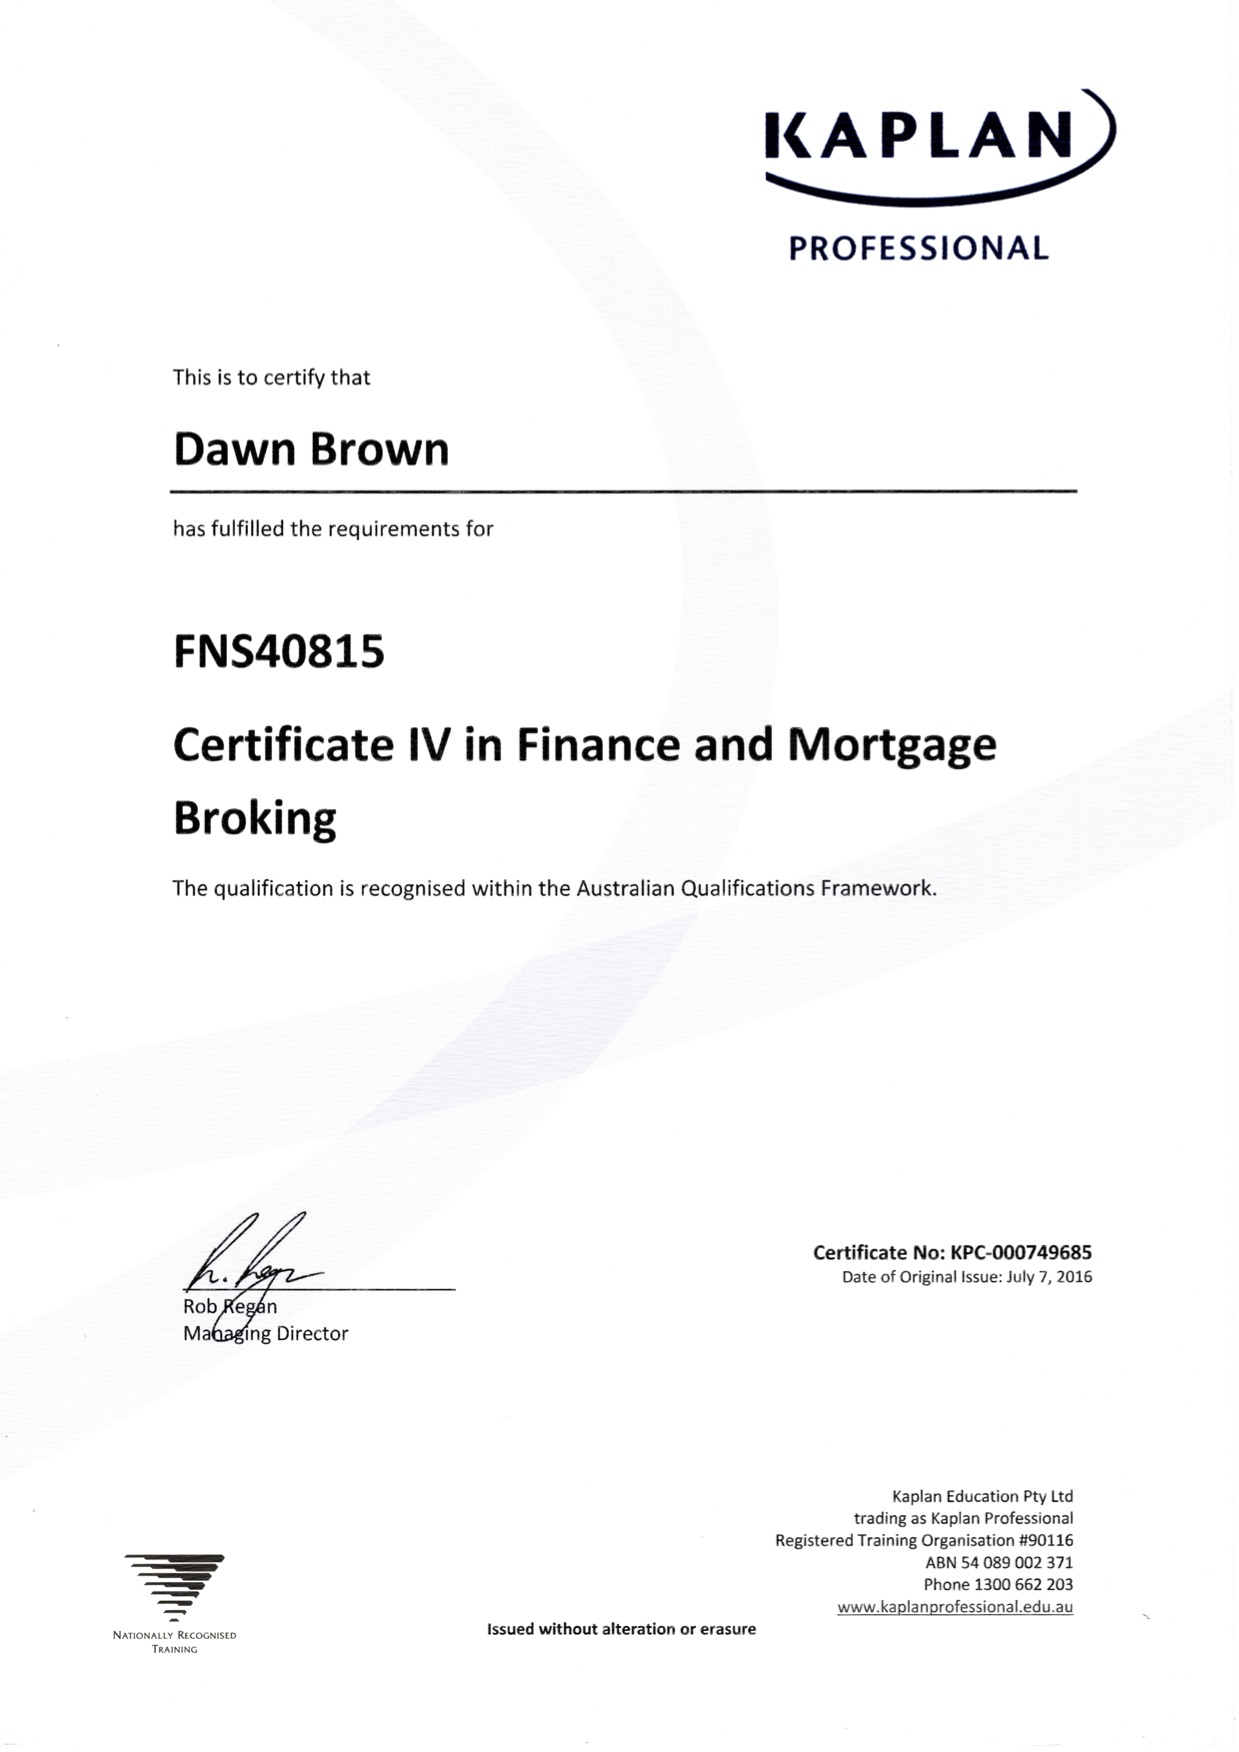 Certificate IV in Finance and Mortgage Broking